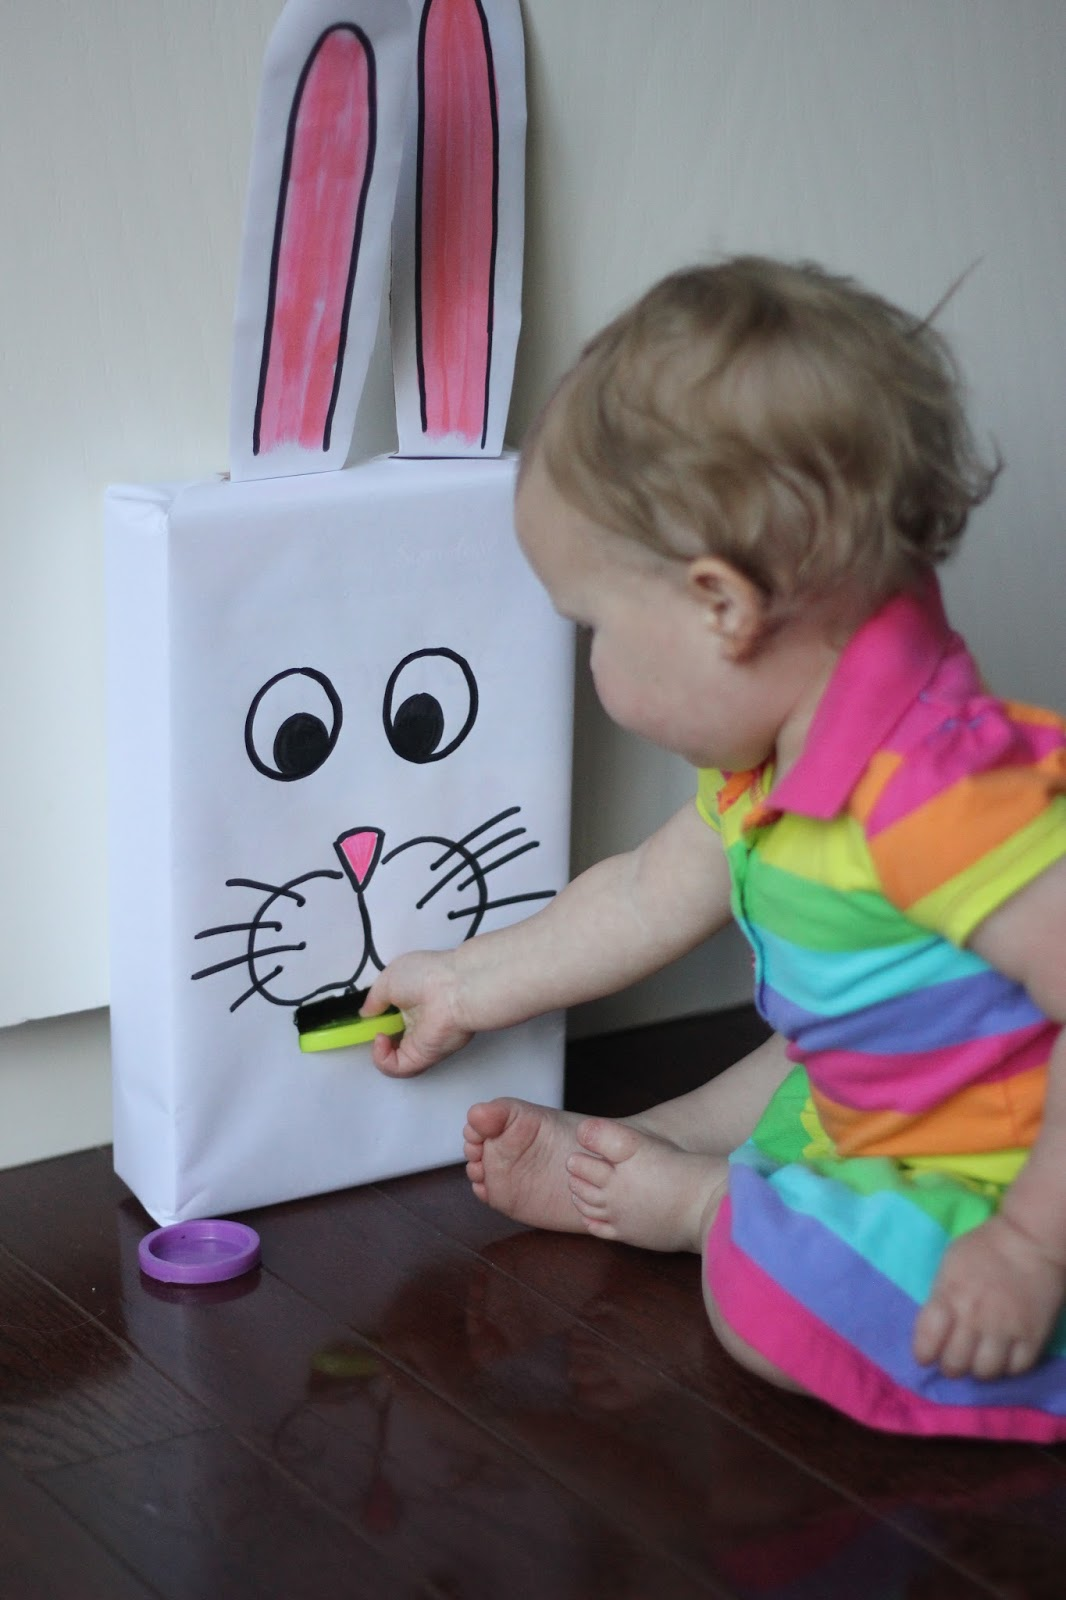 Toddler Approved Cereal Box Feed The Bunny Color Game For Kids